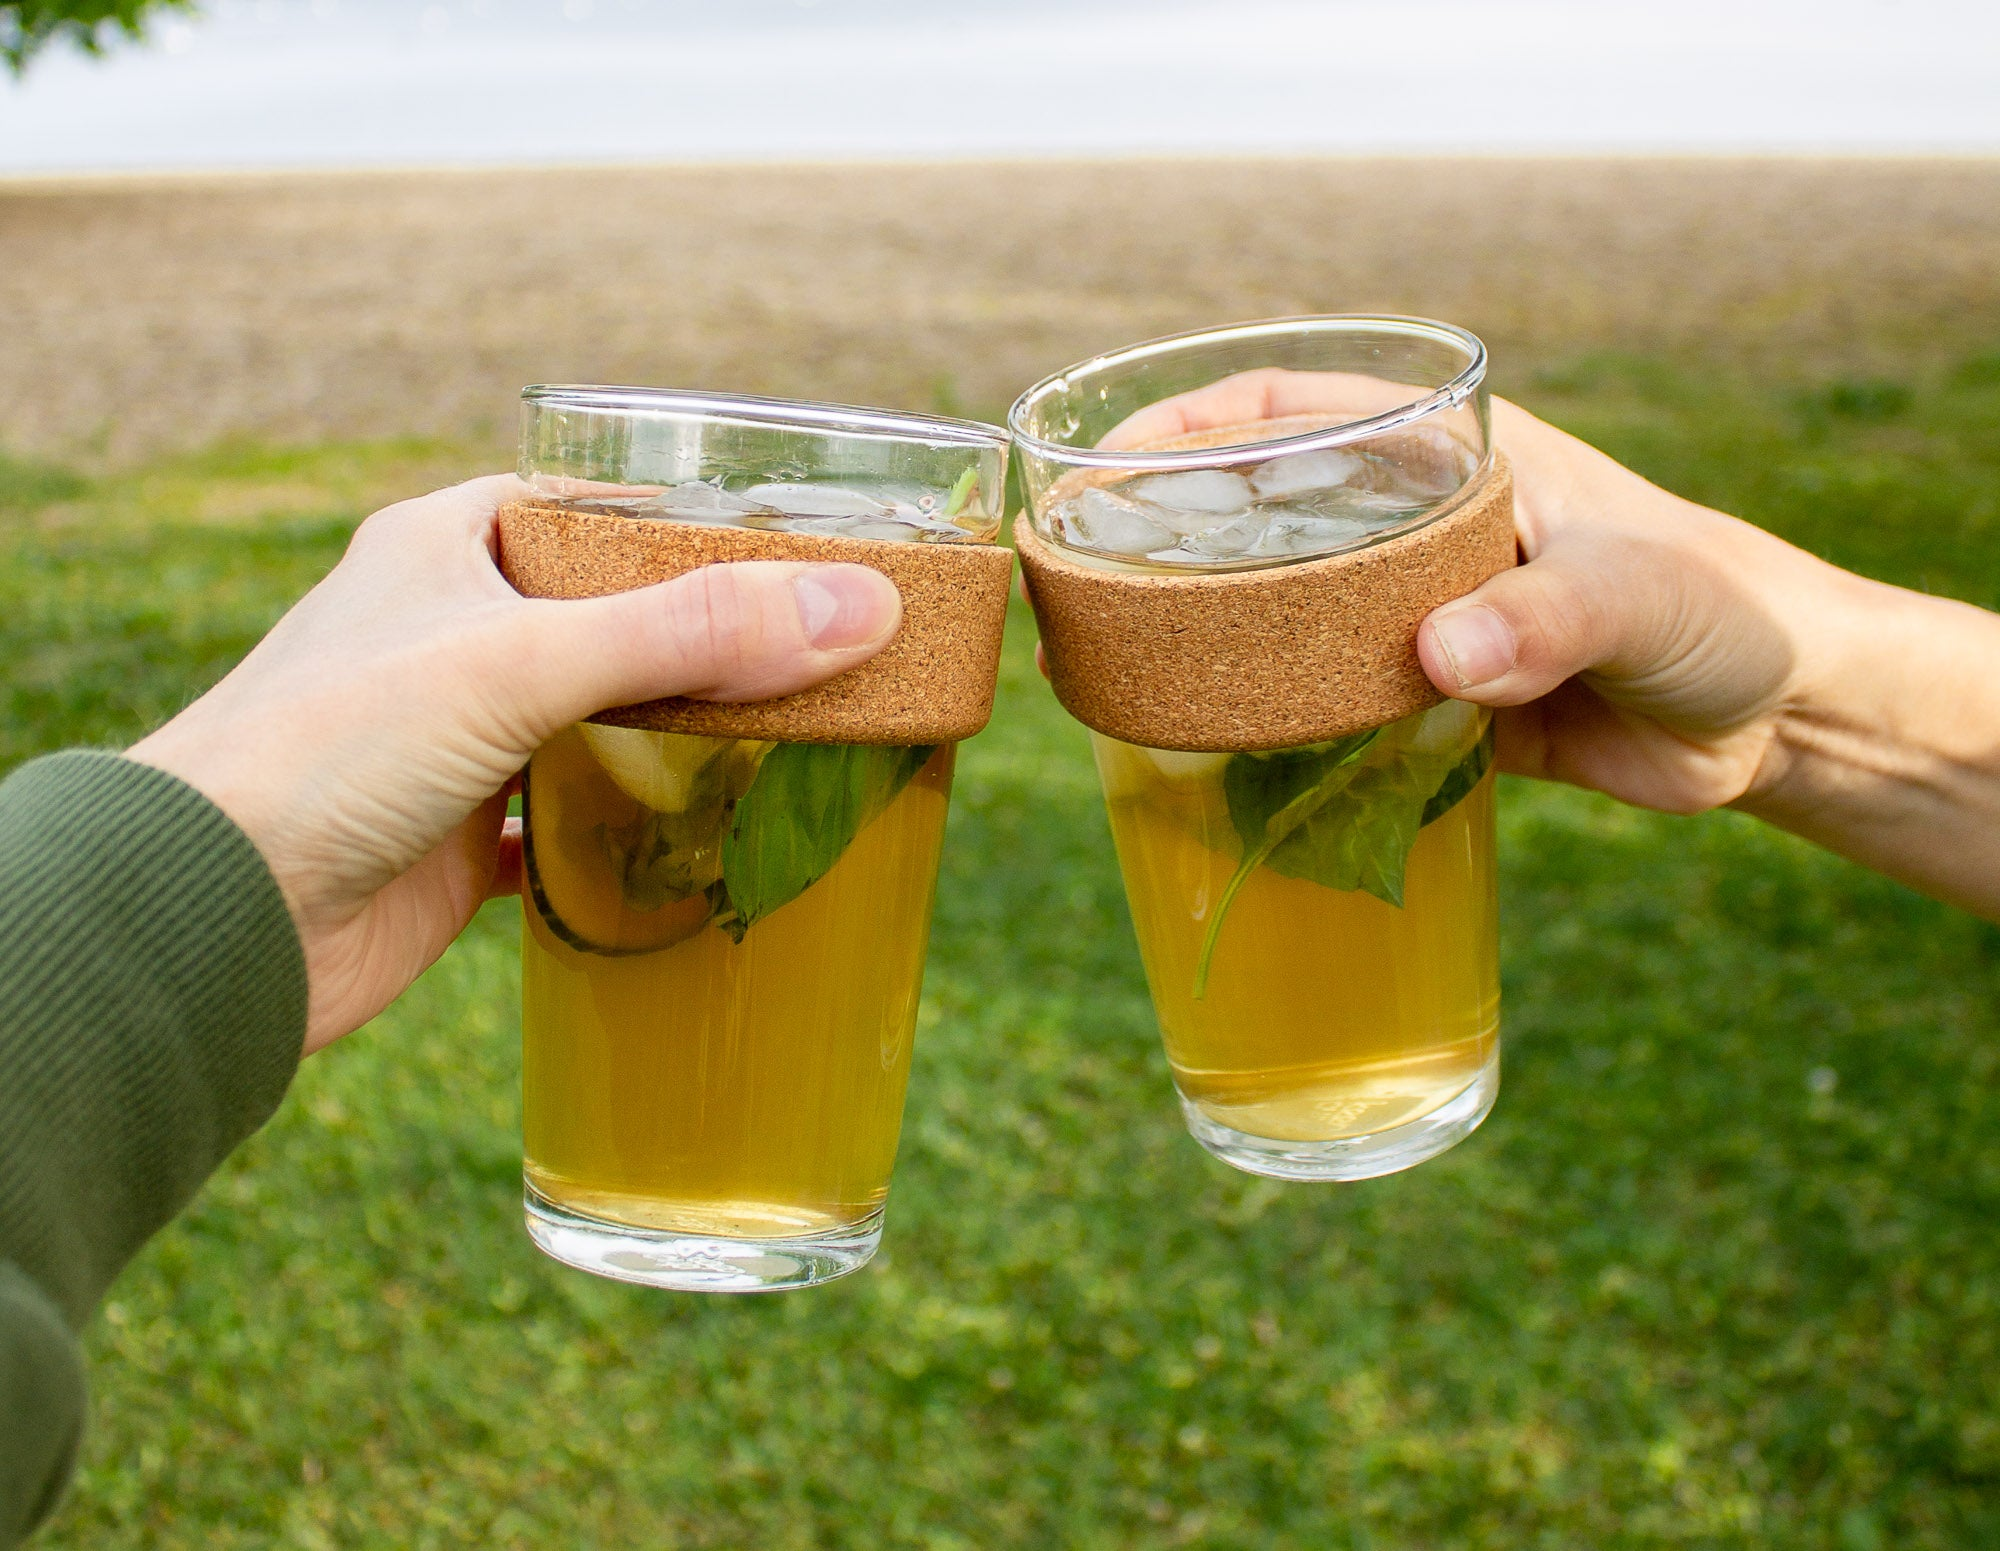 2 hands holding glasses of Clover adaptogenic iced tea, tapping to say cheers.